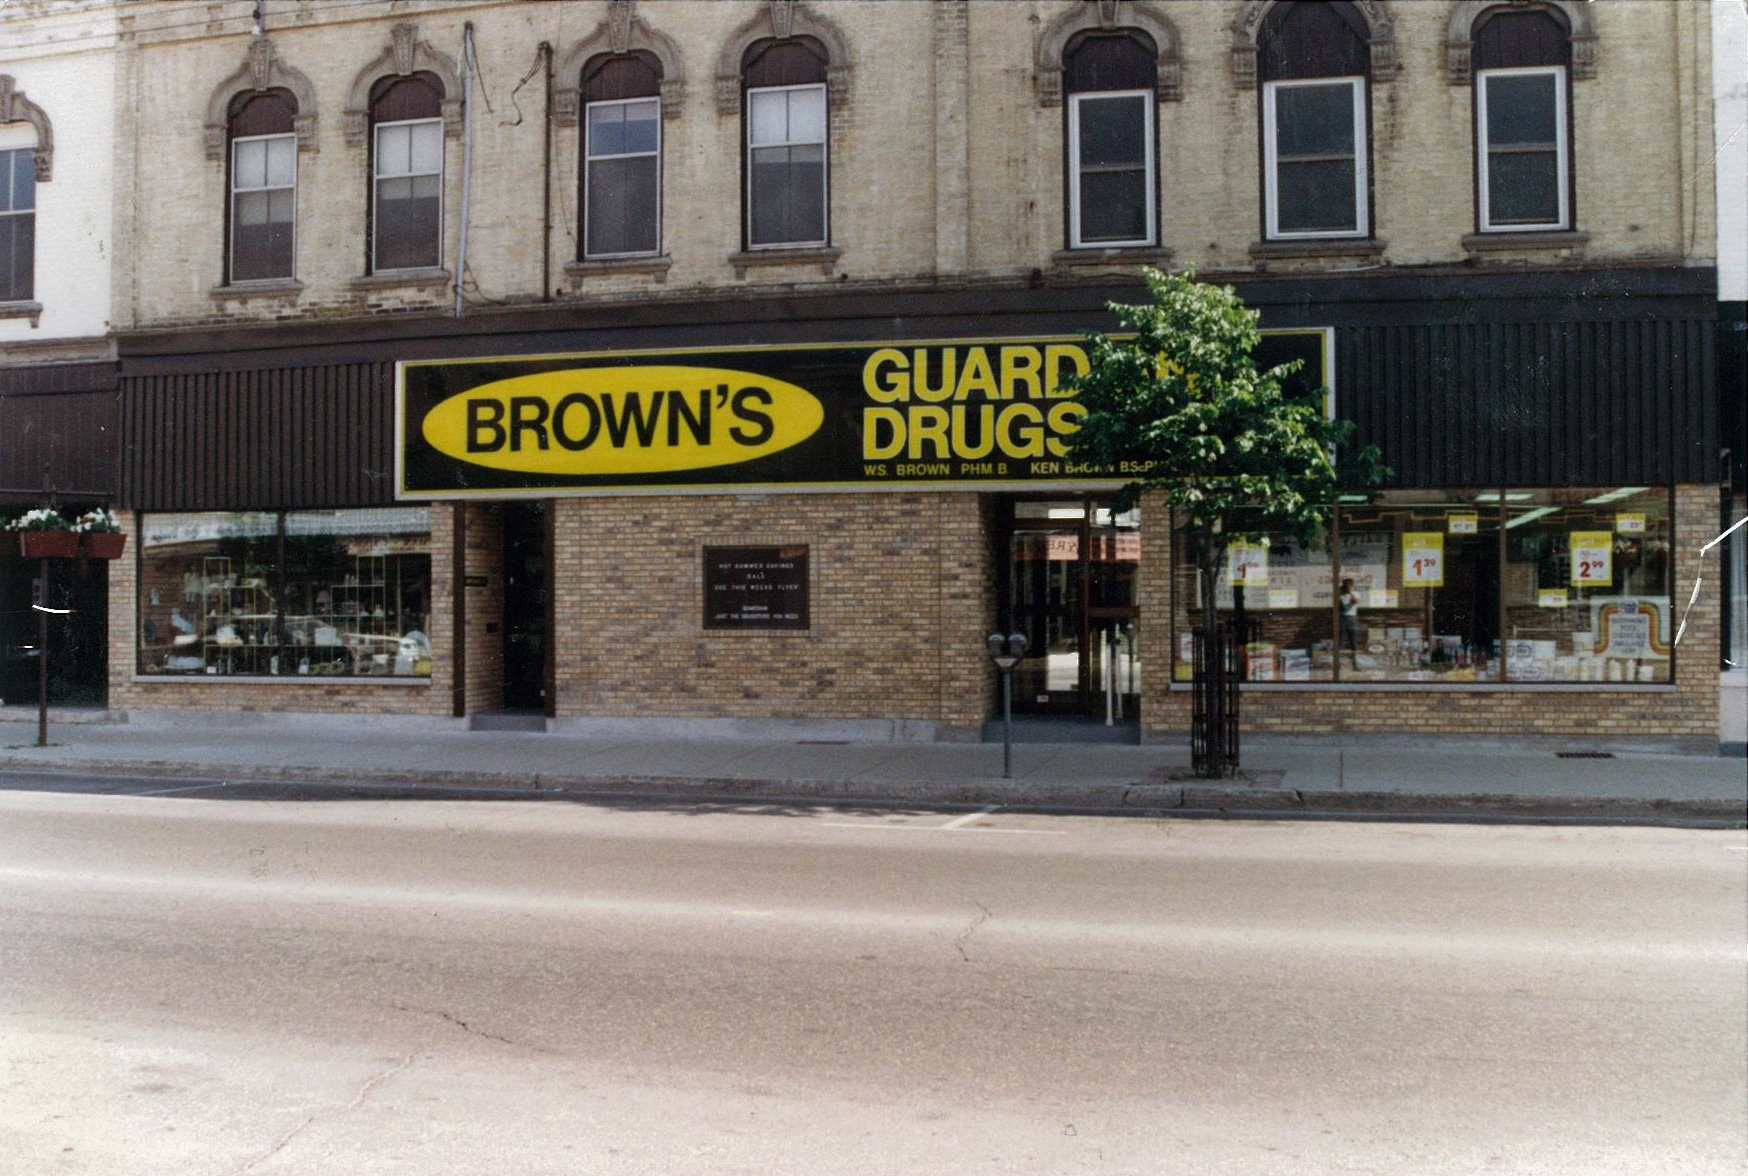 Brown's Guardian Drugs